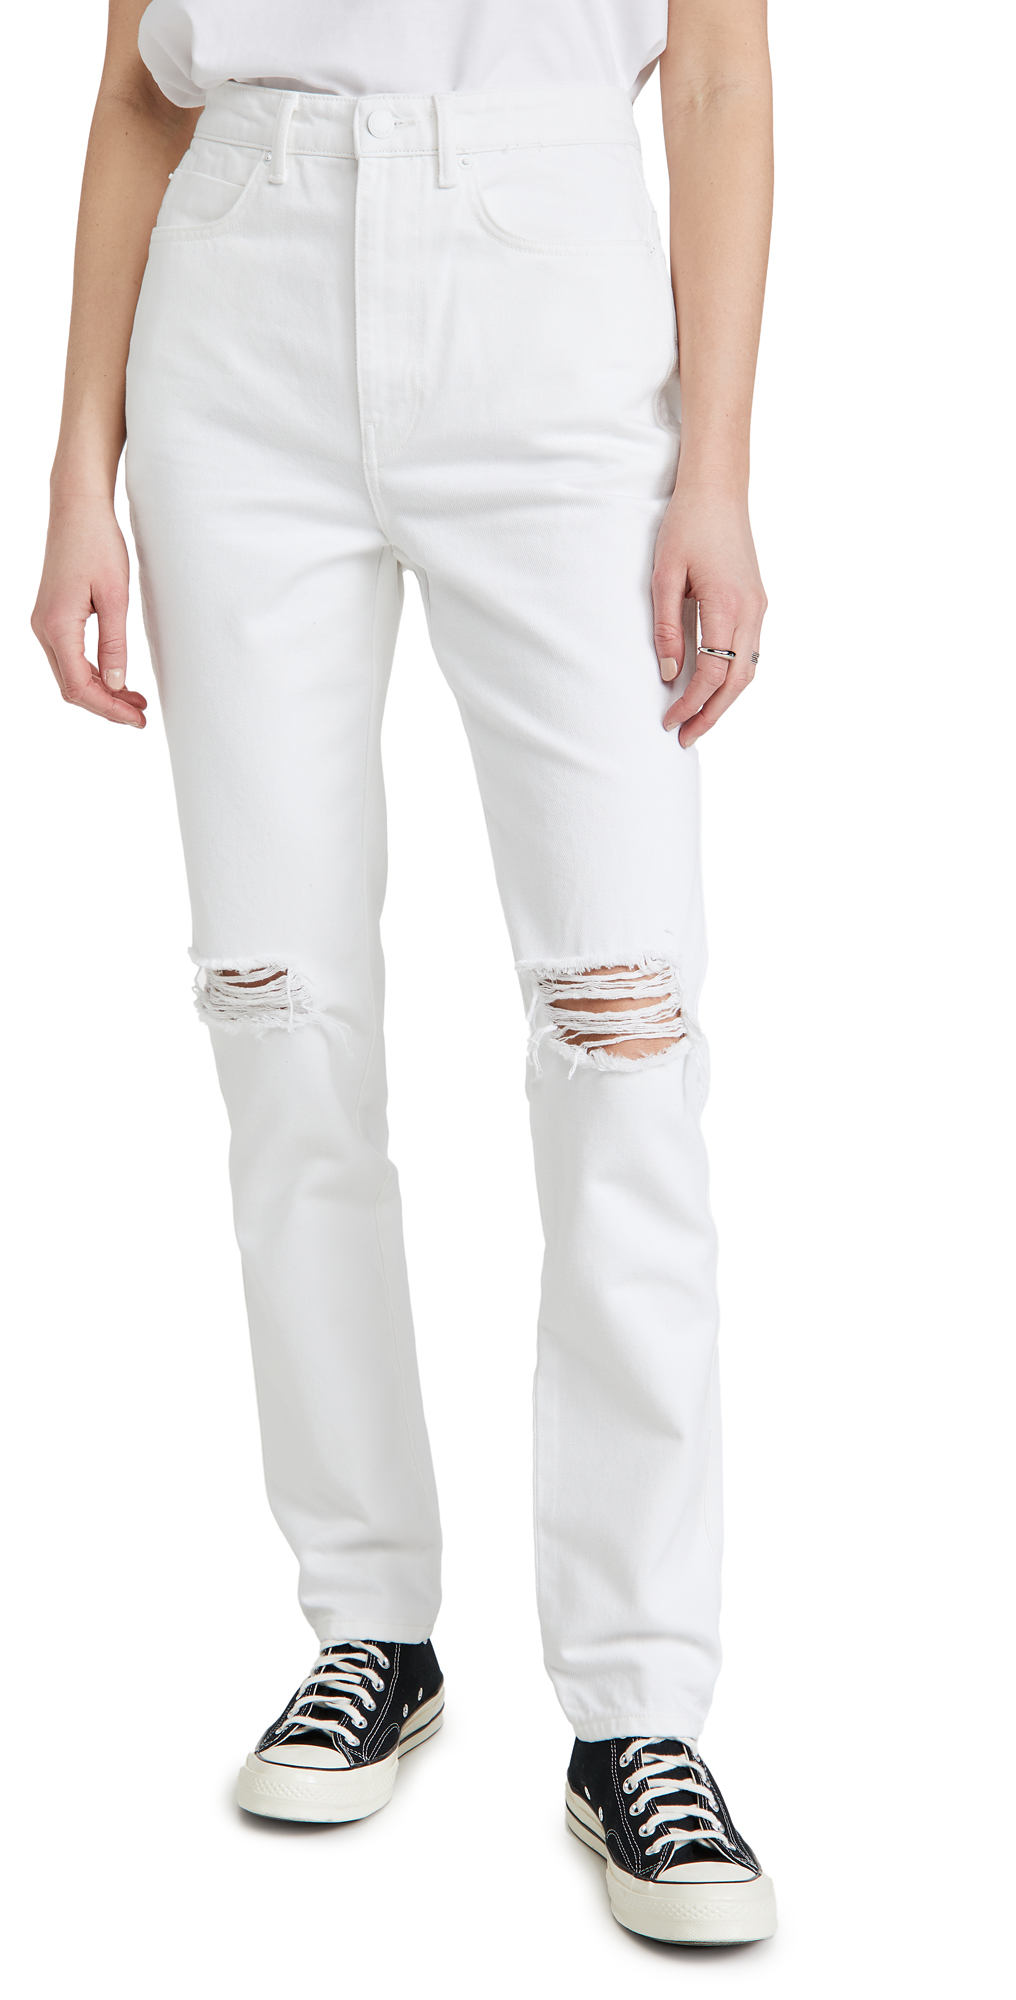 High Waist Jeans with Dipped Back